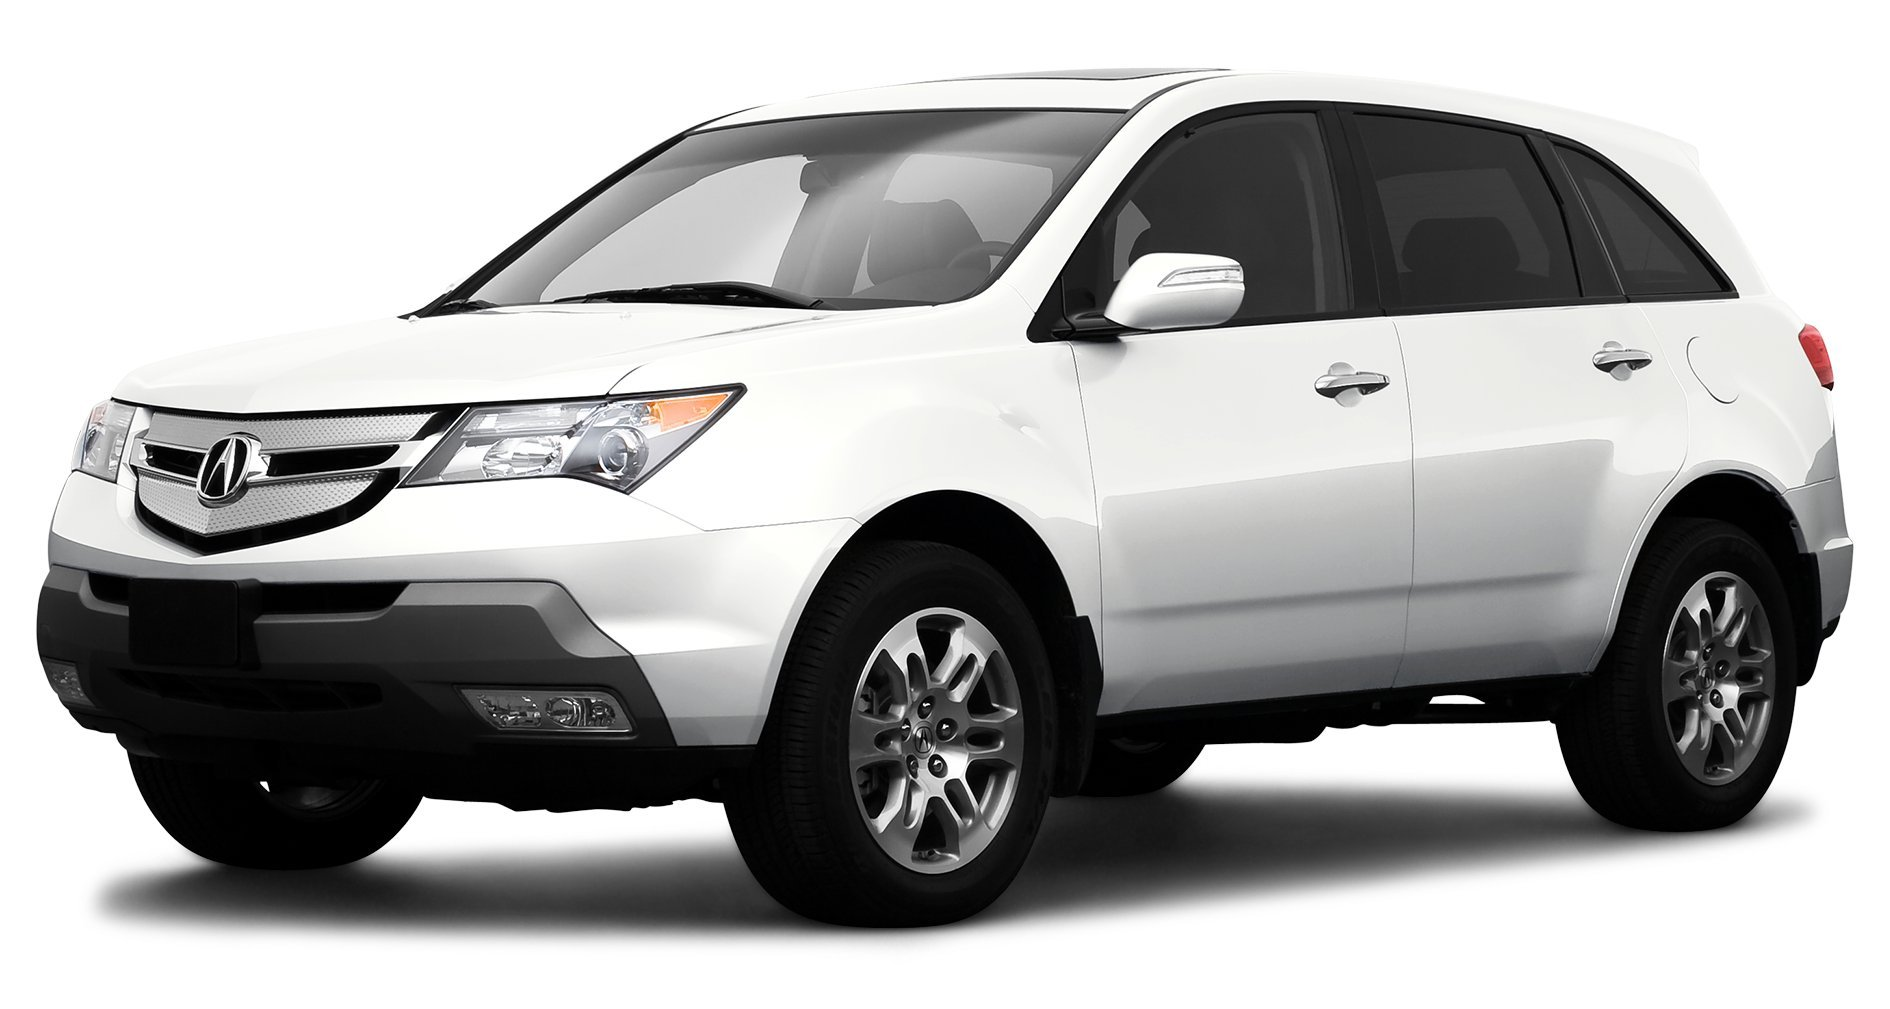 amazon com 2009 acura mdx reviews images and specs vehicles rh amazon com 2011 Acura MDX 2008 Acura MDX